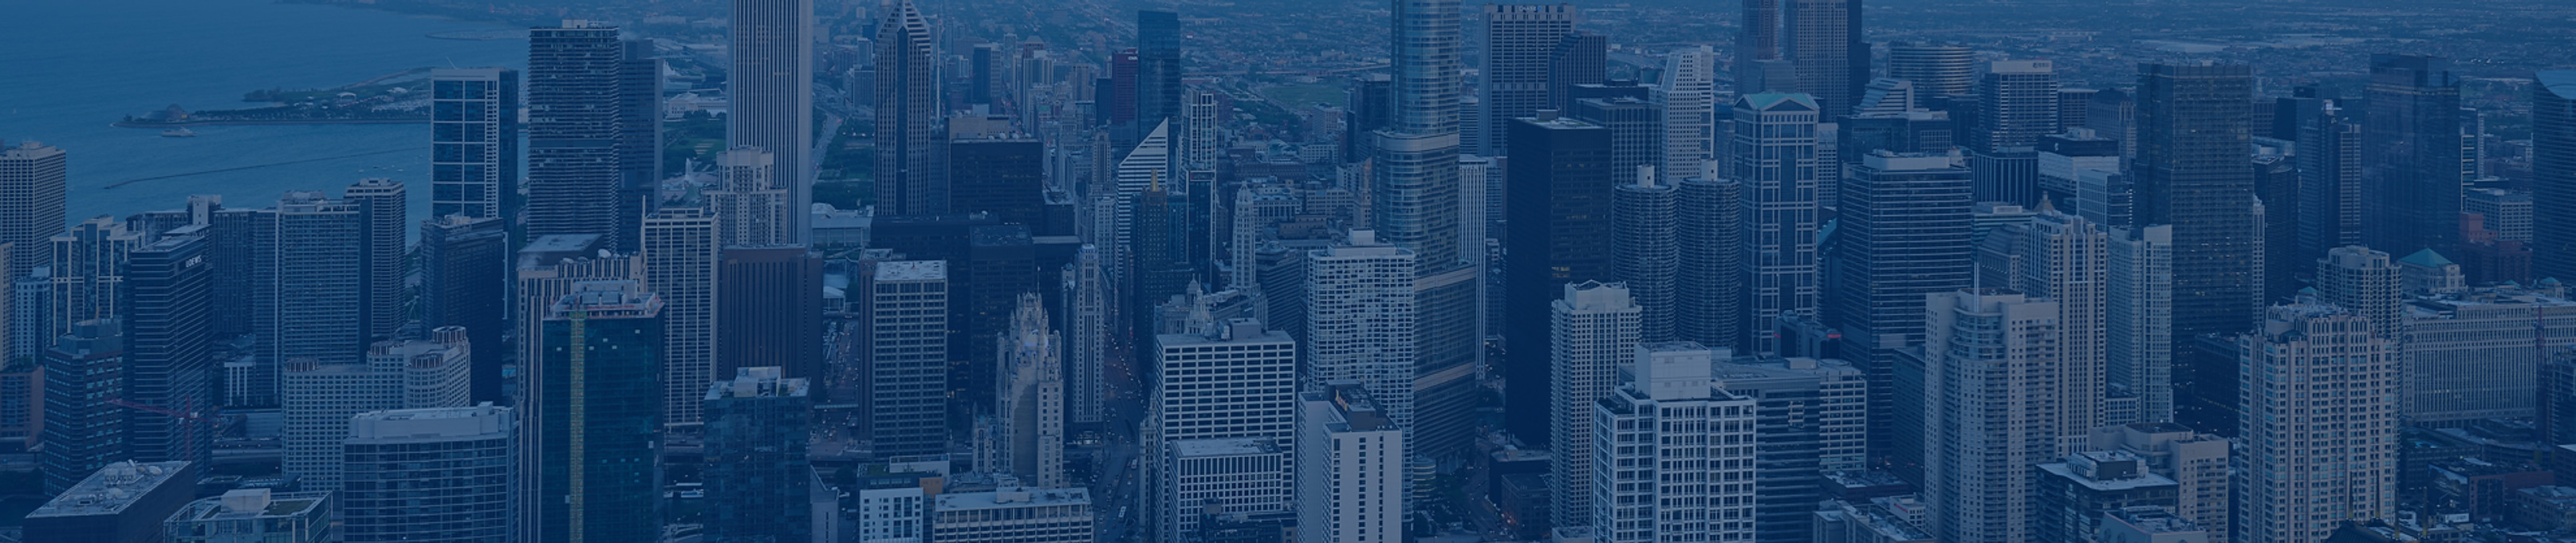 chicago-aerial-photography-city-building